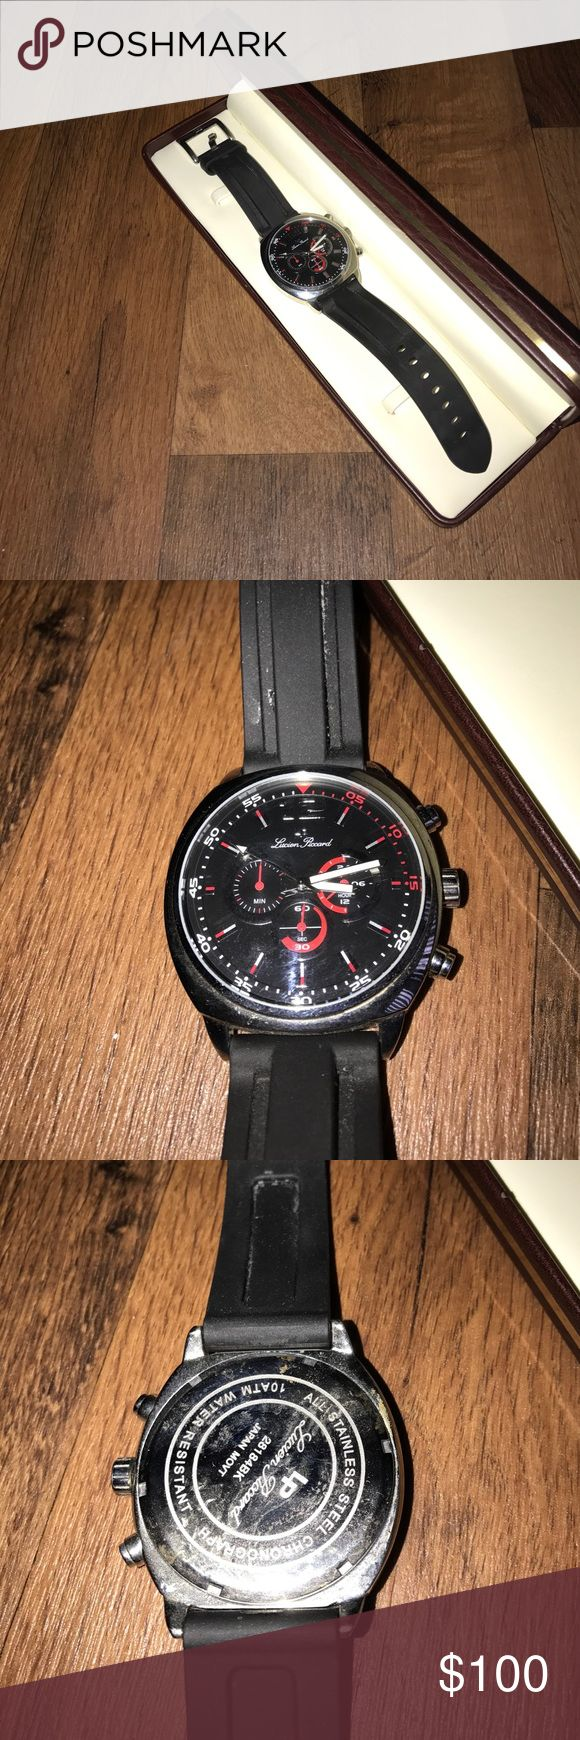 Lucien Piccard Large Face Rubber Wrist Watch Needs a new battery Lucien Piccard Accessories Watches